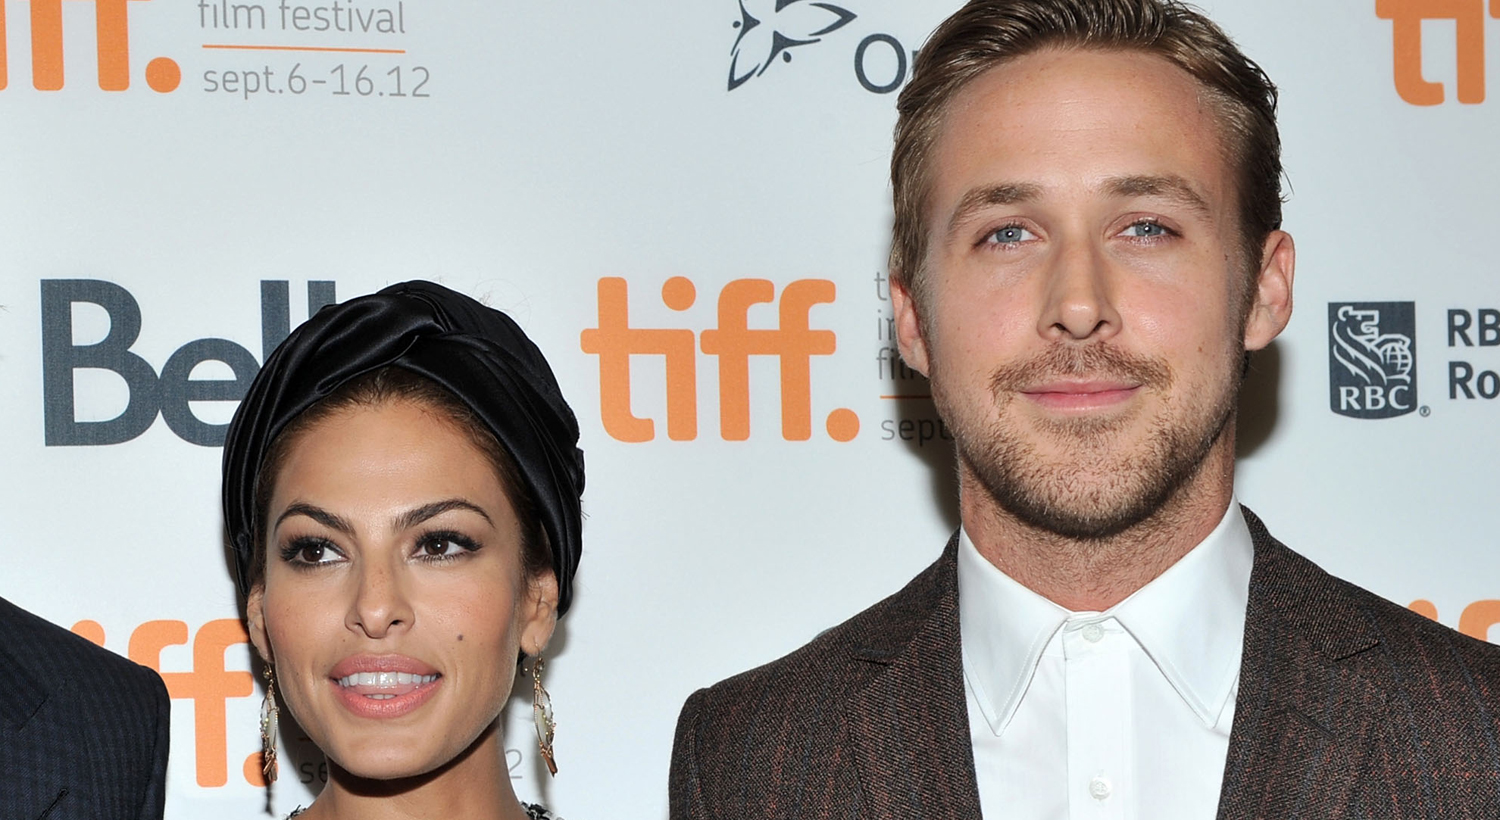 Forum on this topic: Ryan Gosling Goes All Out To Support , ryan-gosling-goes-all-out-to-support/